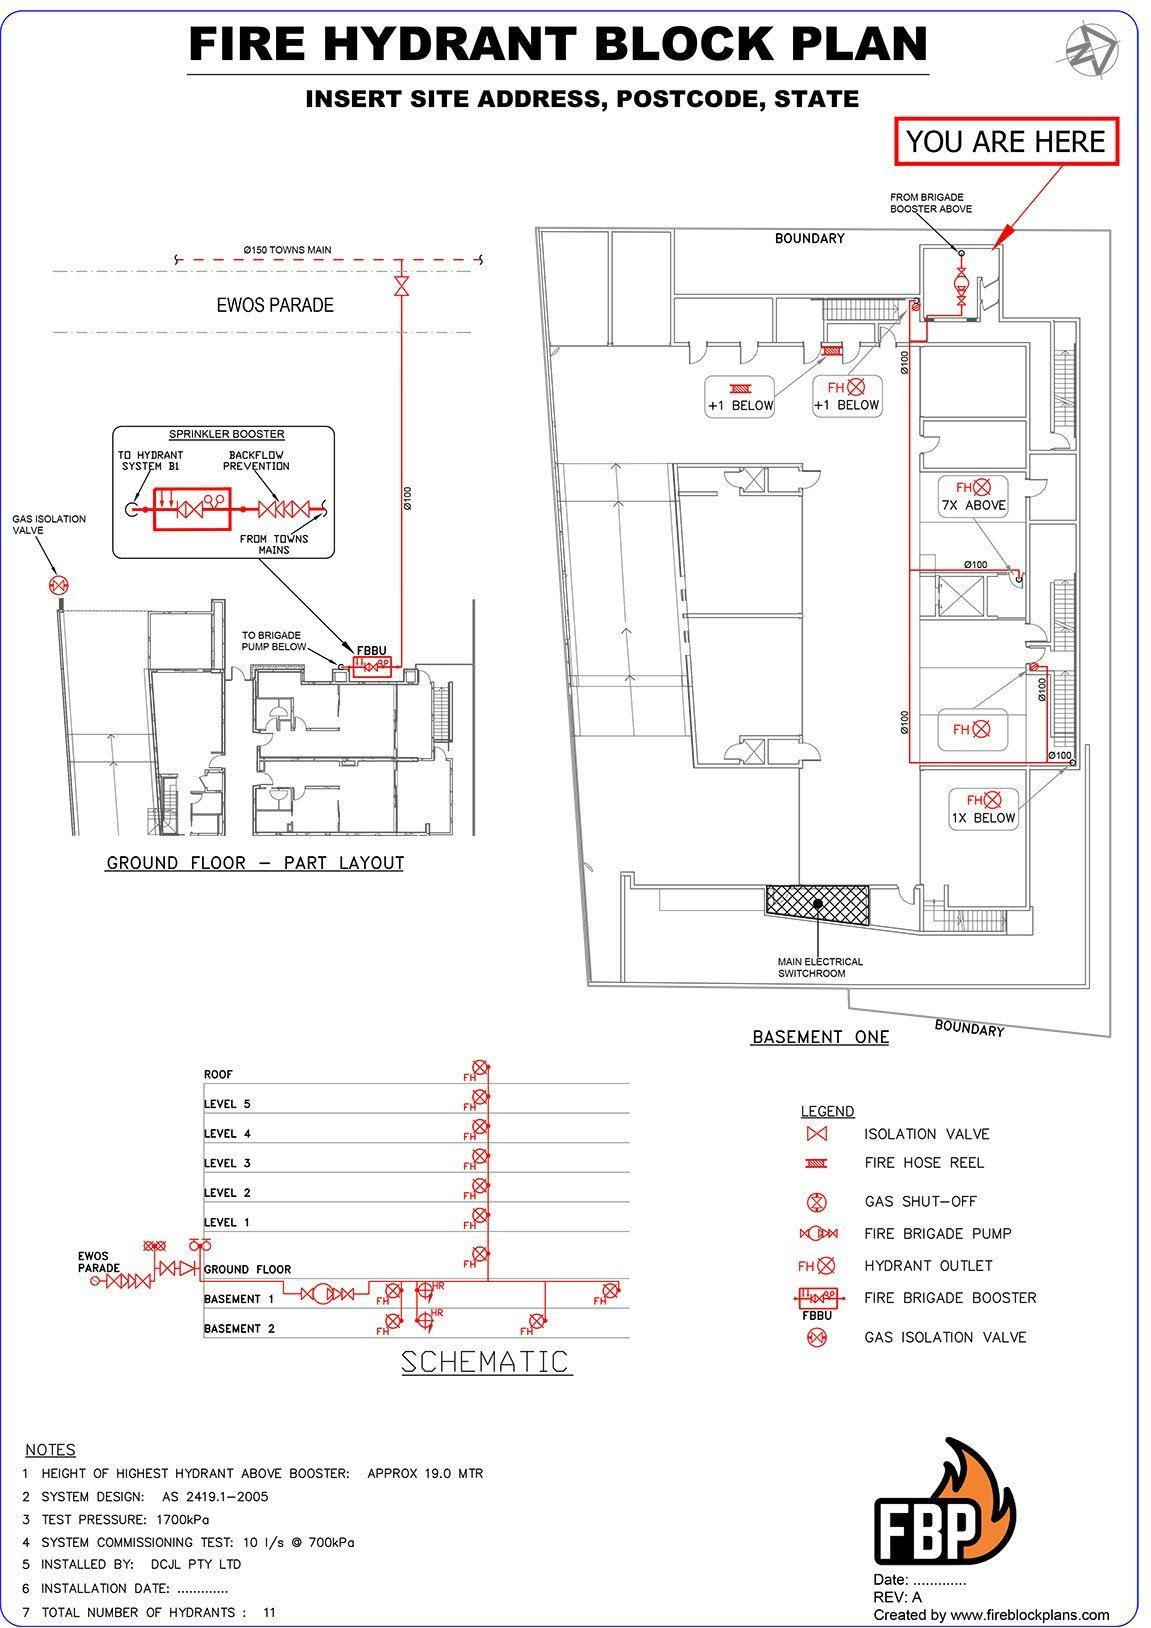 Block Plans - Hydrant, Fire Alarm, Sprinkler - Australia Wide